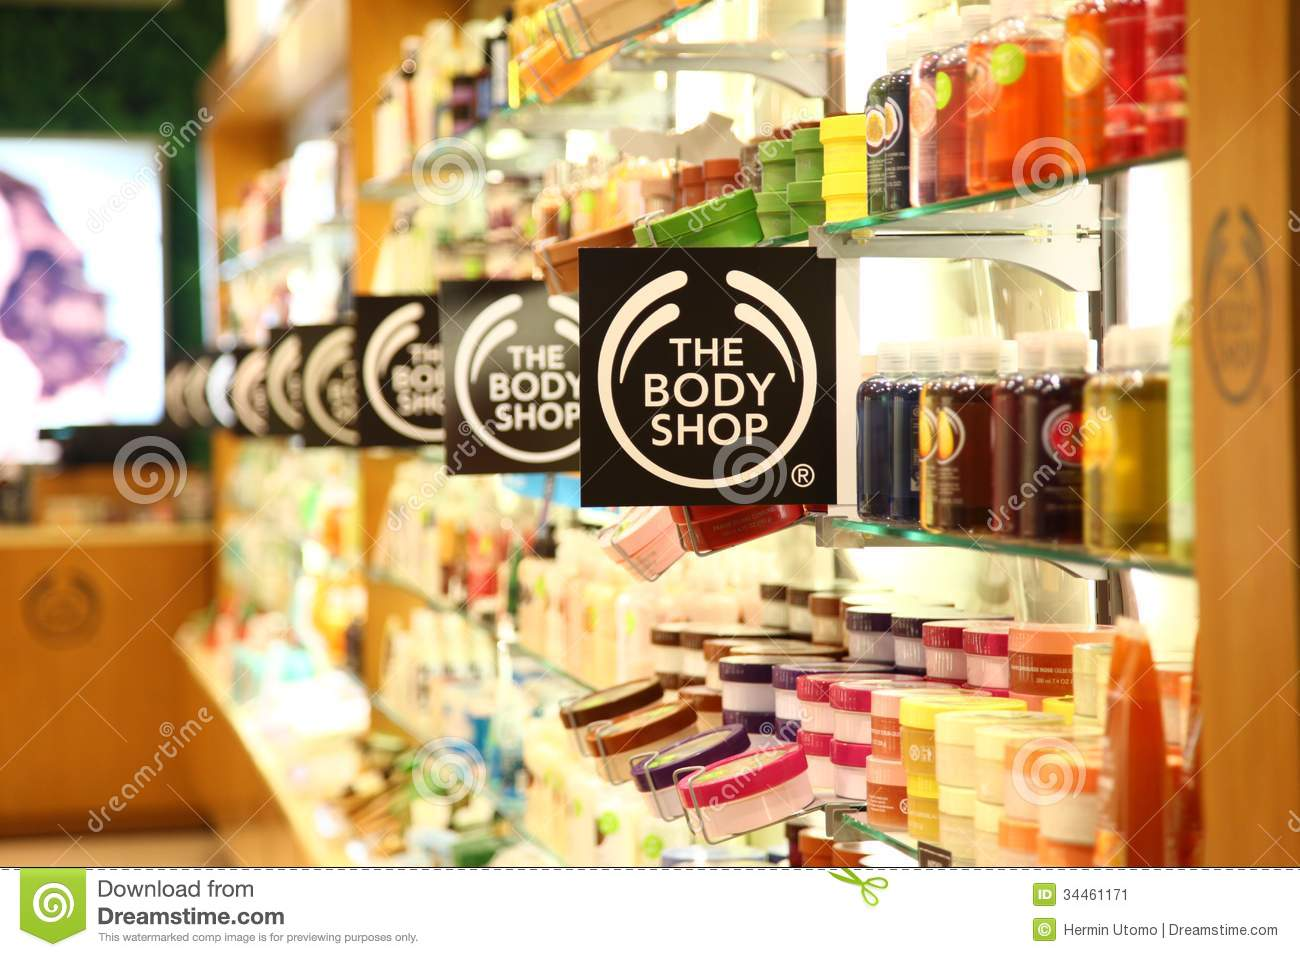 The Body Shop is the original, naturally-inspired and ethical beauty brand. We seek out wonderful ingredients from all four corners of the globe to deliver products bursting with effectiveness, to enhance your natural beauty.